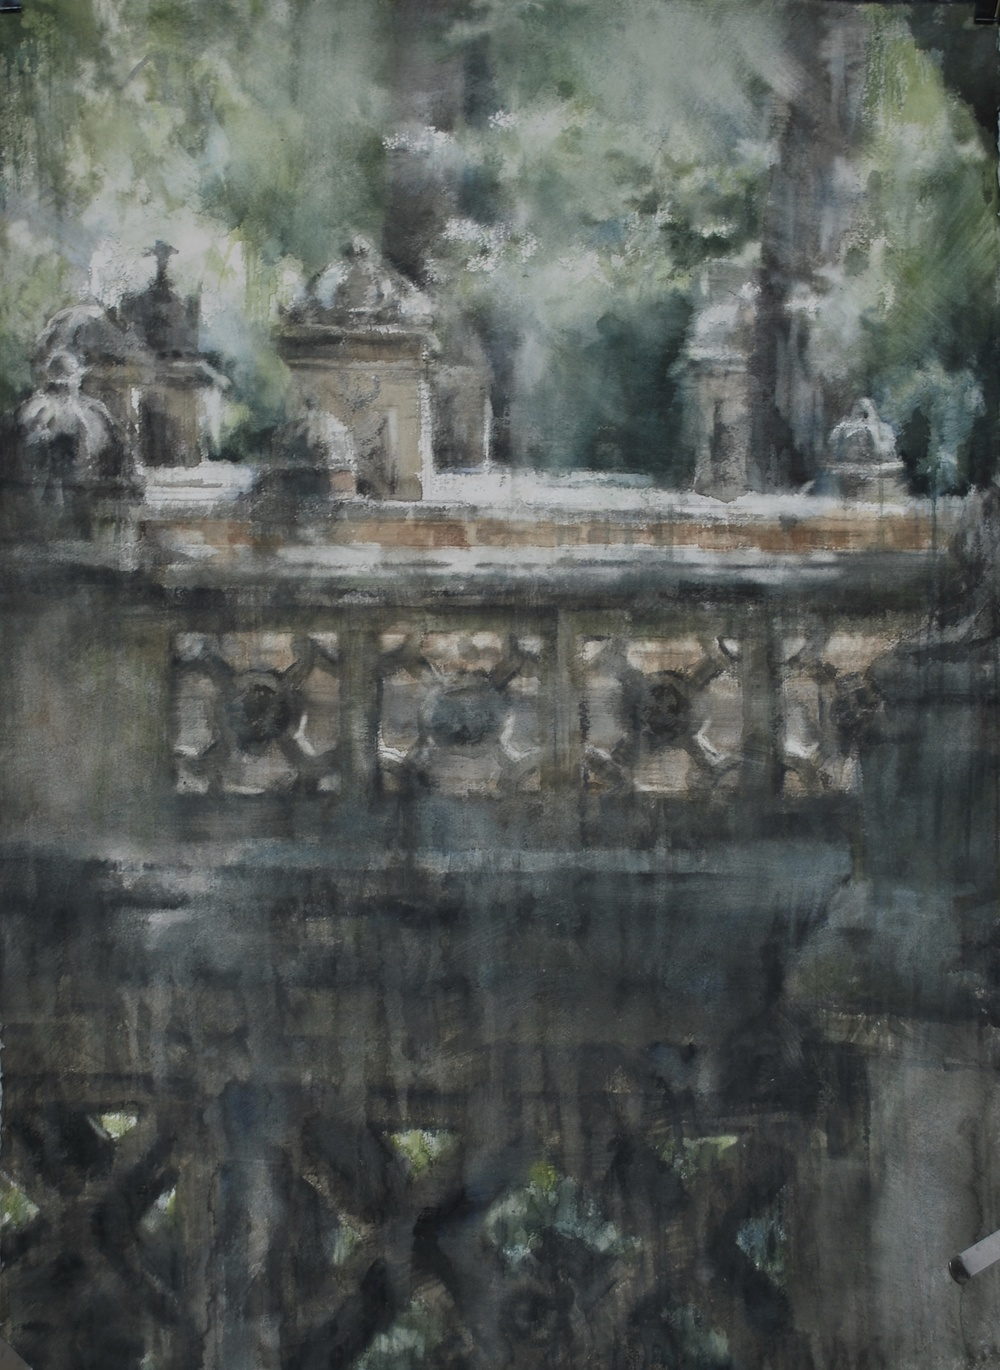 Bethesda Terrace, NYC, 25x40 inches, SOLD